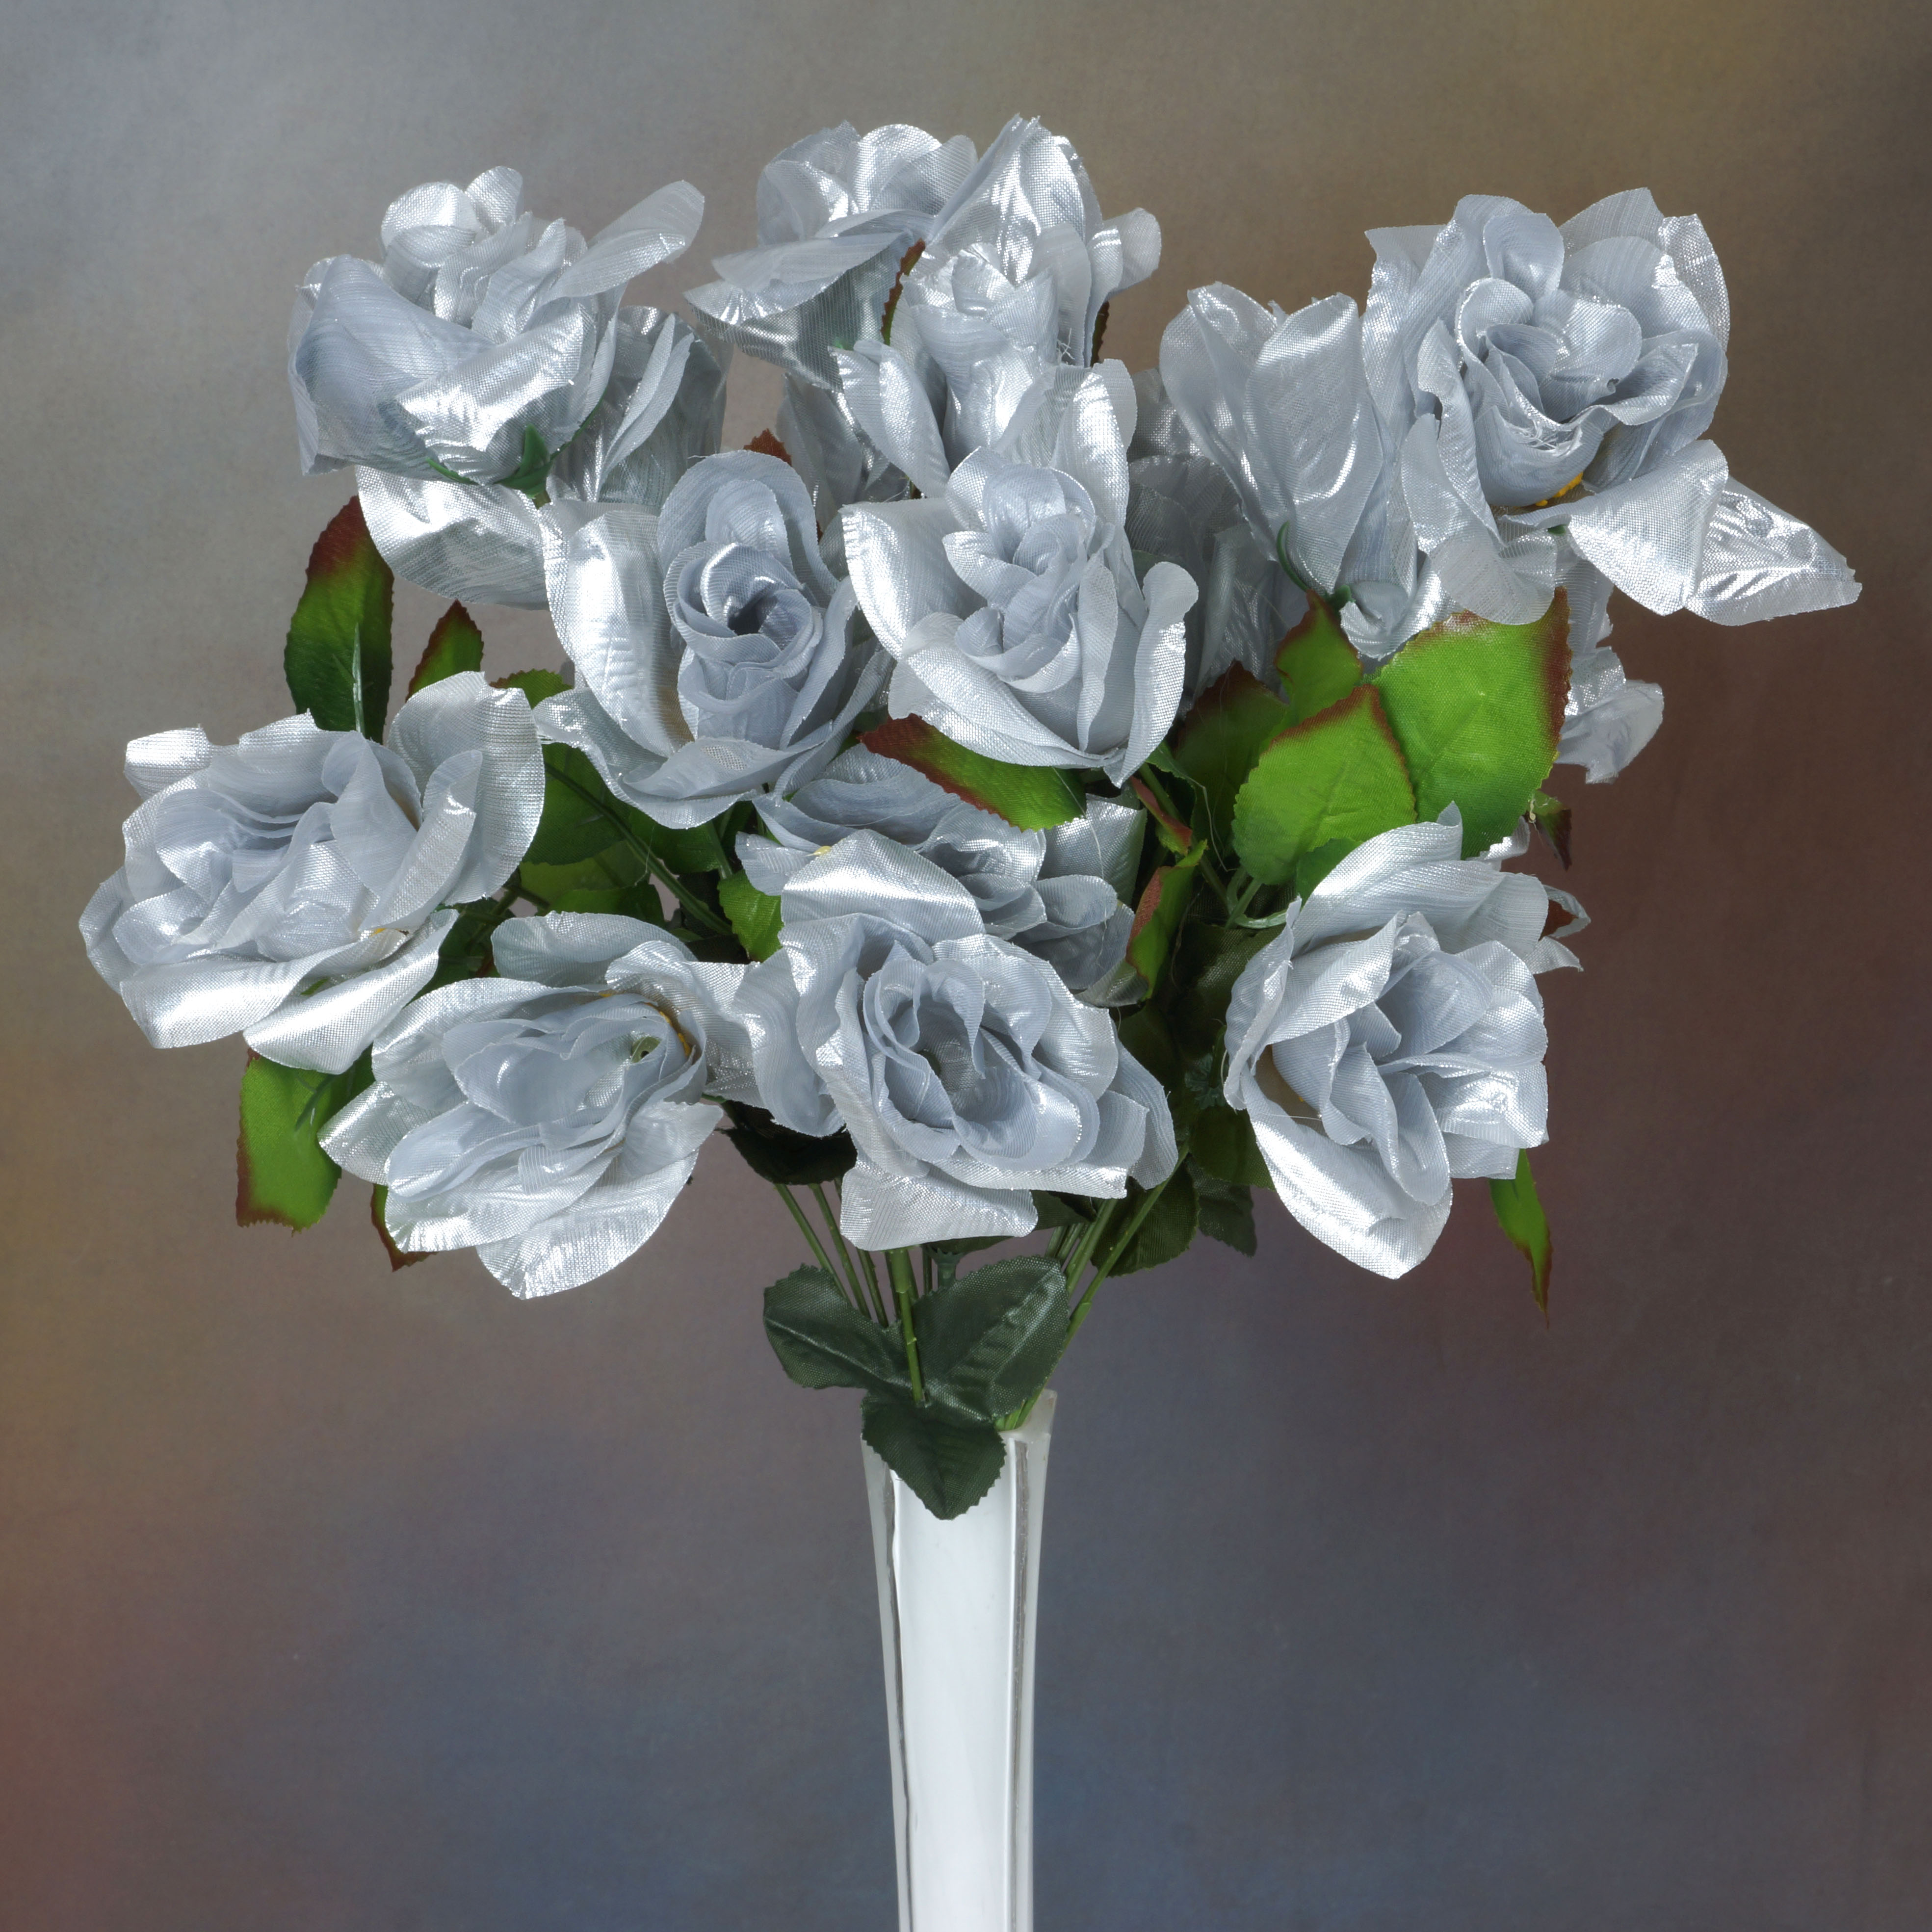 168 Velvet Roses Wedding Flowers Bouquets For Centerpieces Supply